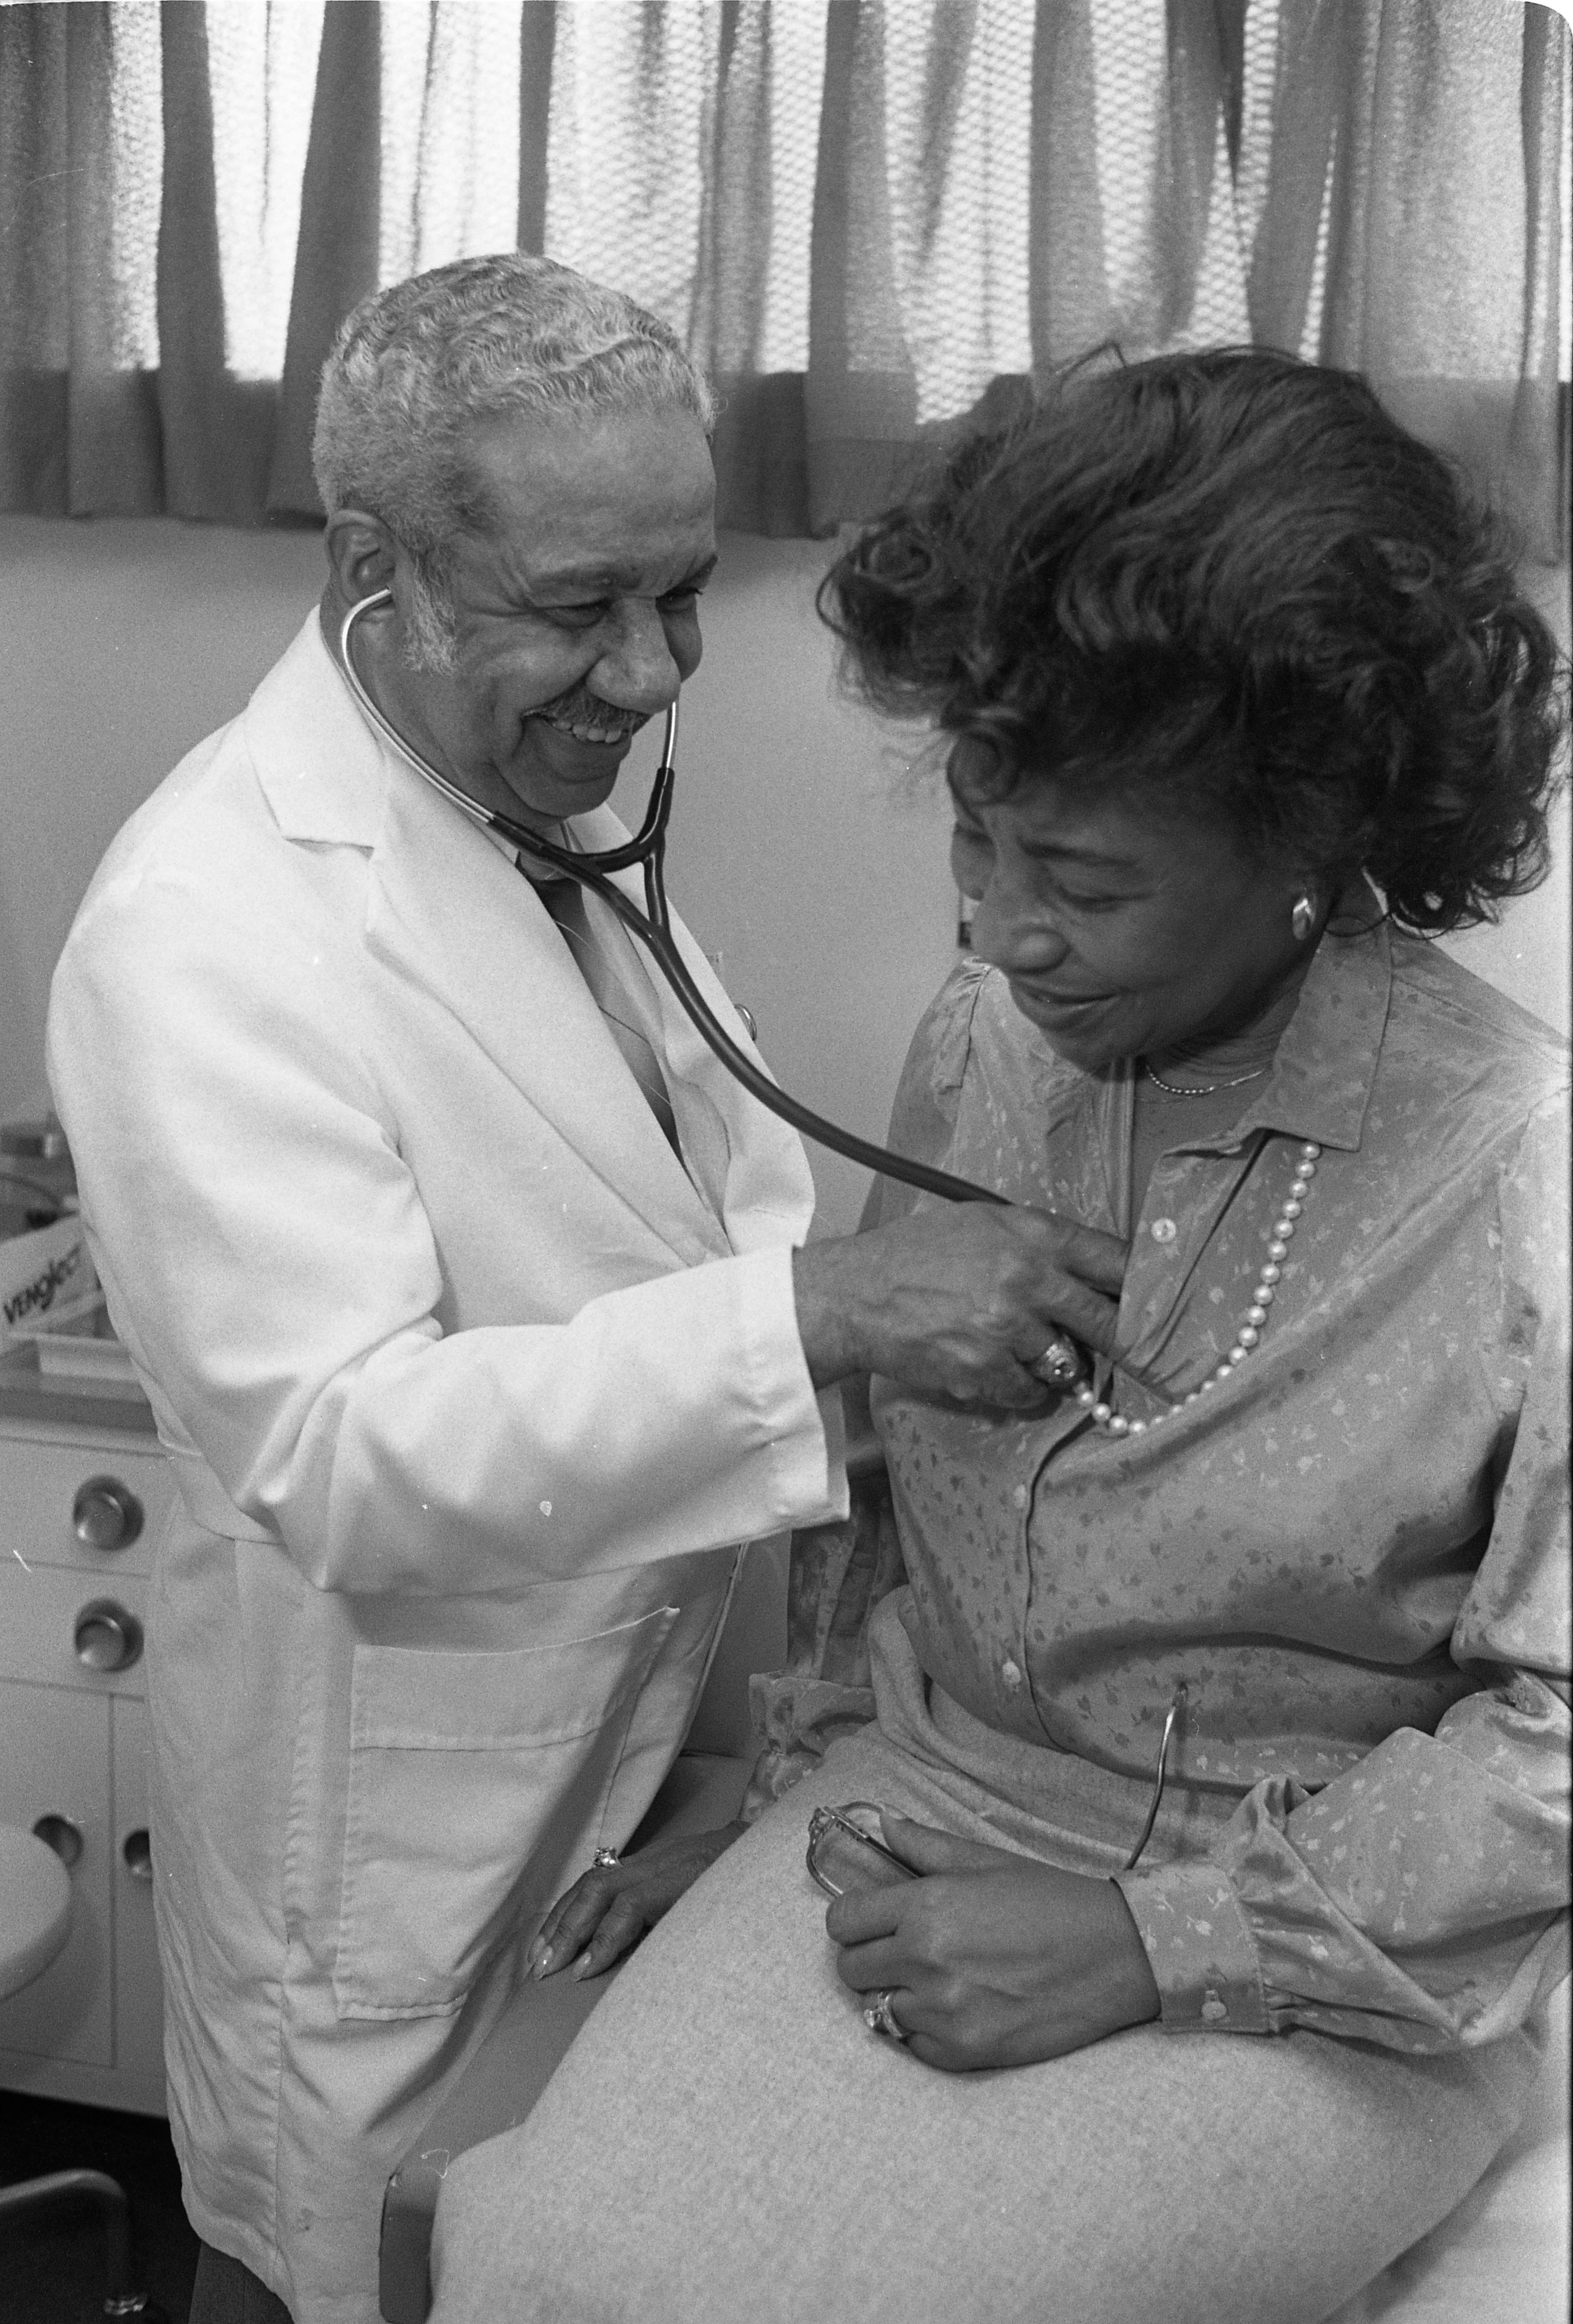 Dr. John C. Shelton With Patient, February 24, 1990 image